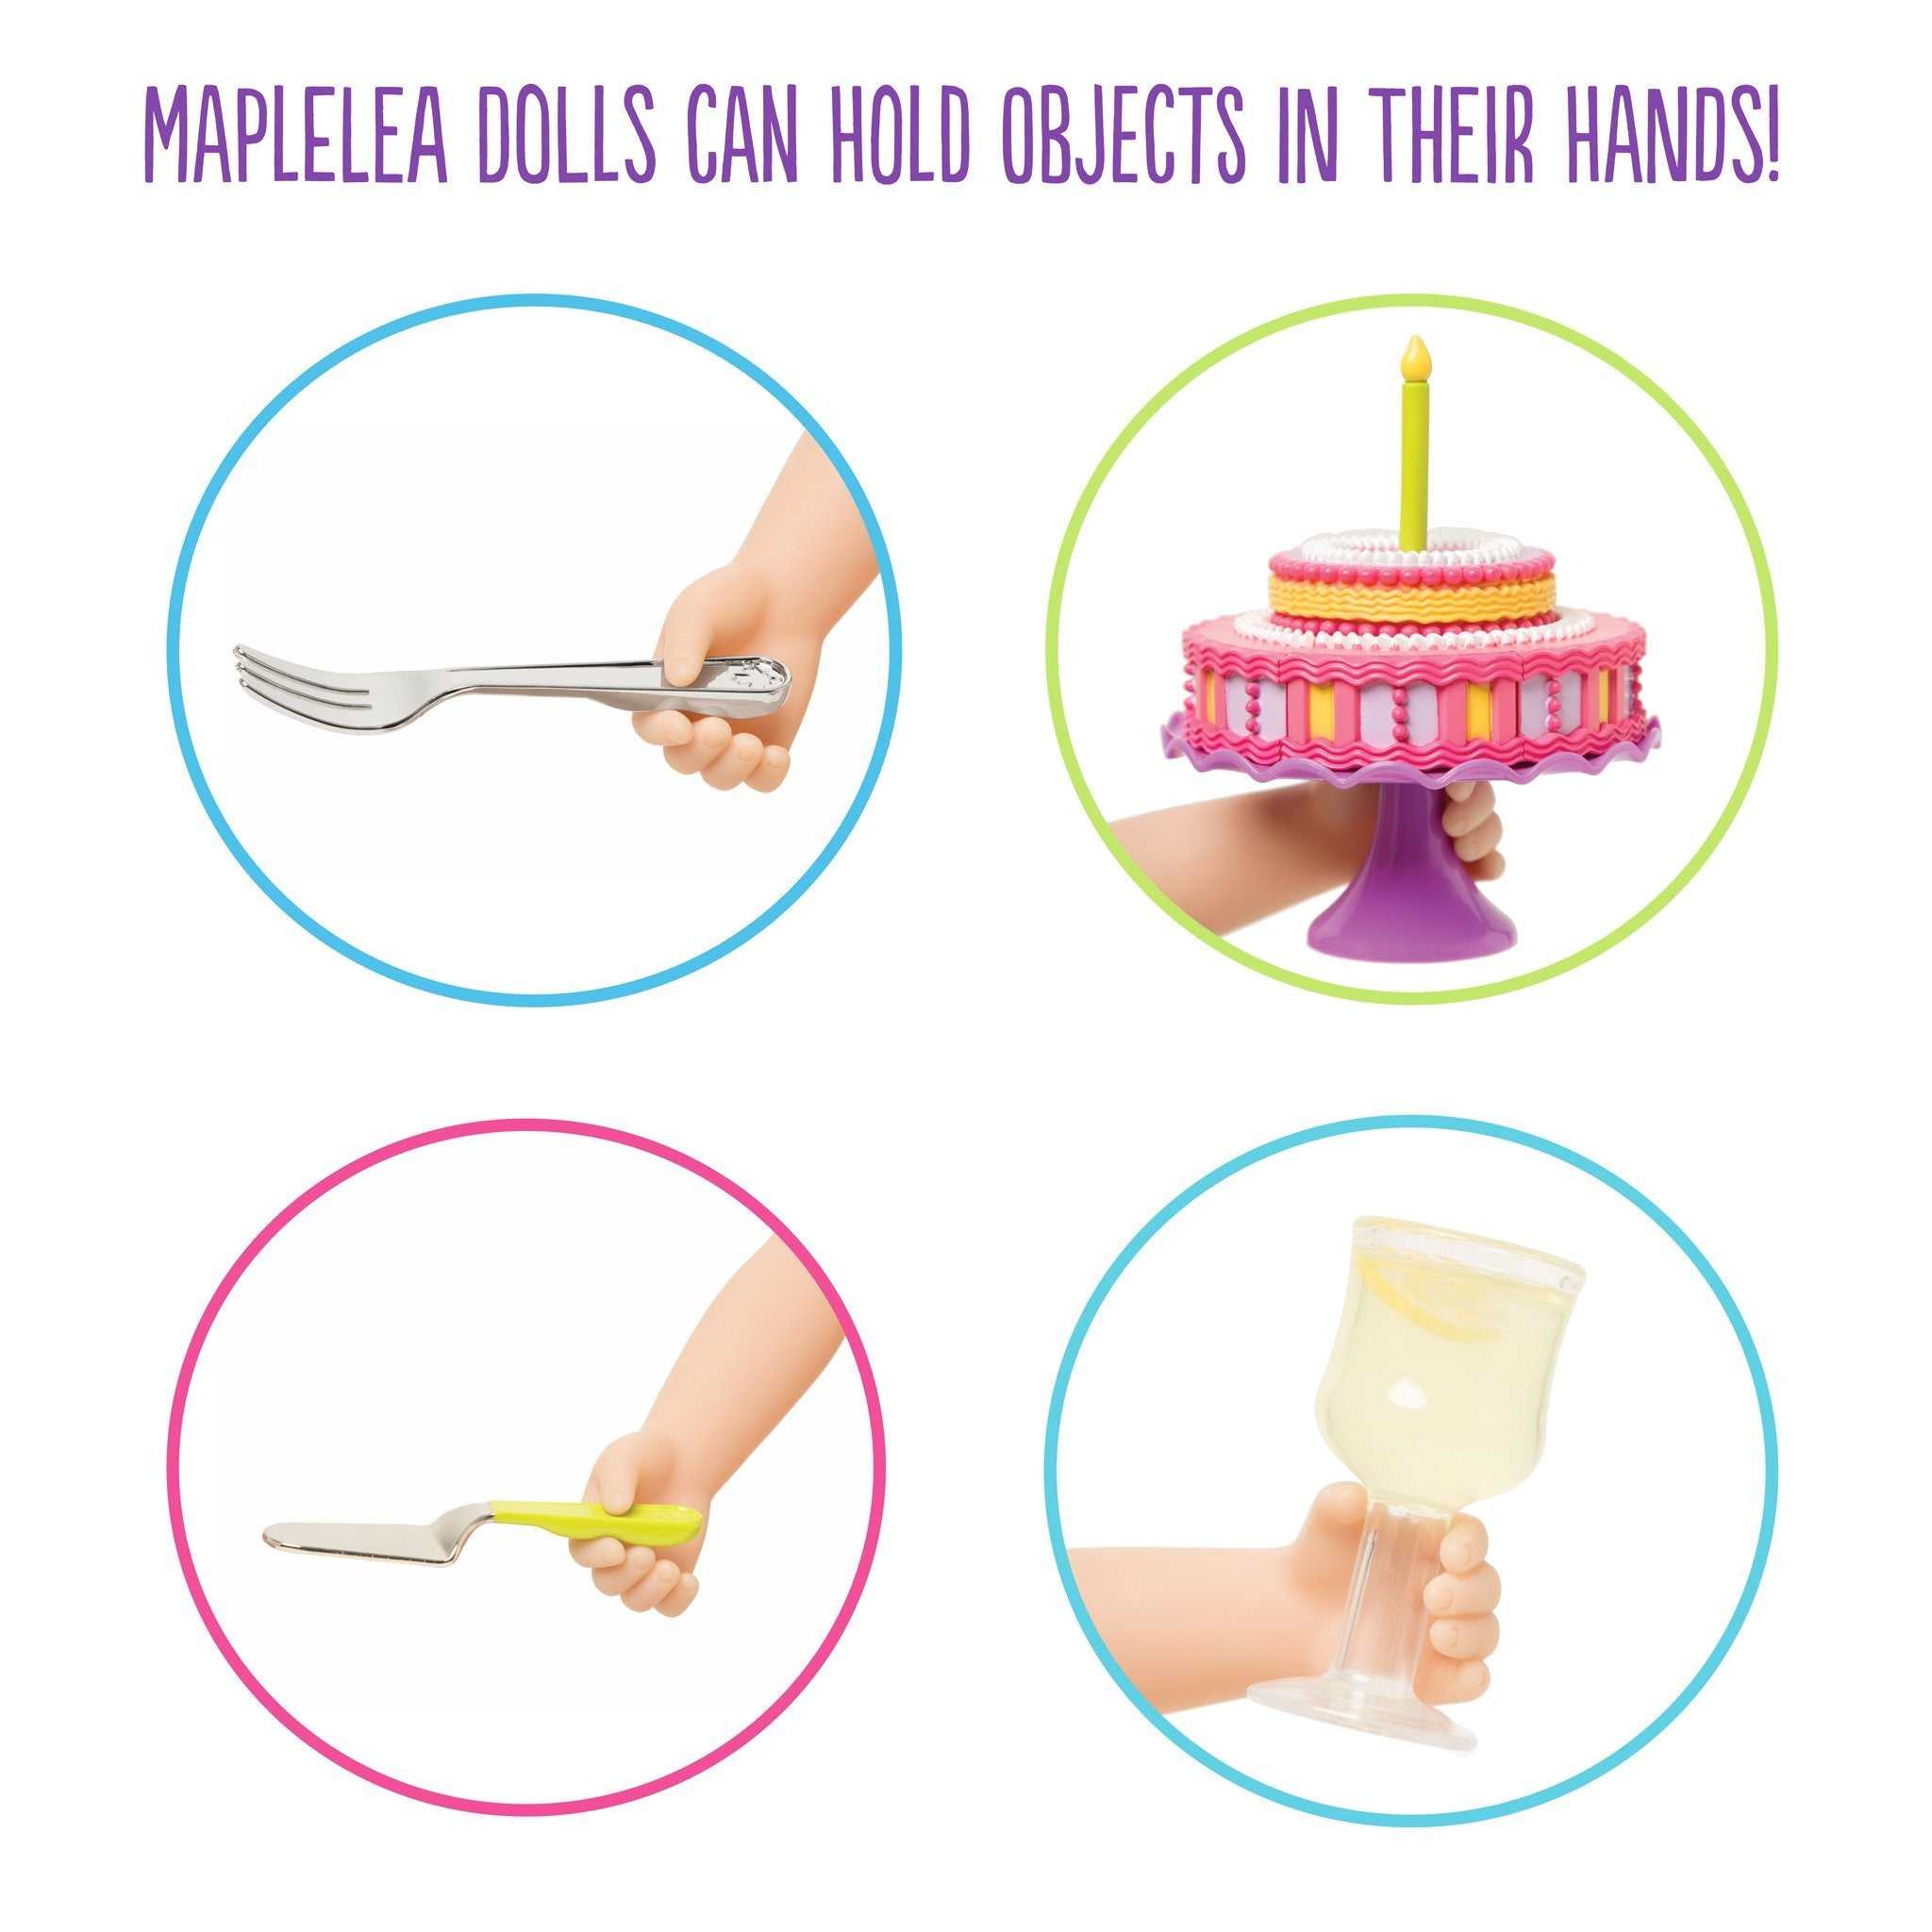 Set to Celebrate - Maplelea dolls can hold objects in their hands like the fork, server, drink and cake stand.